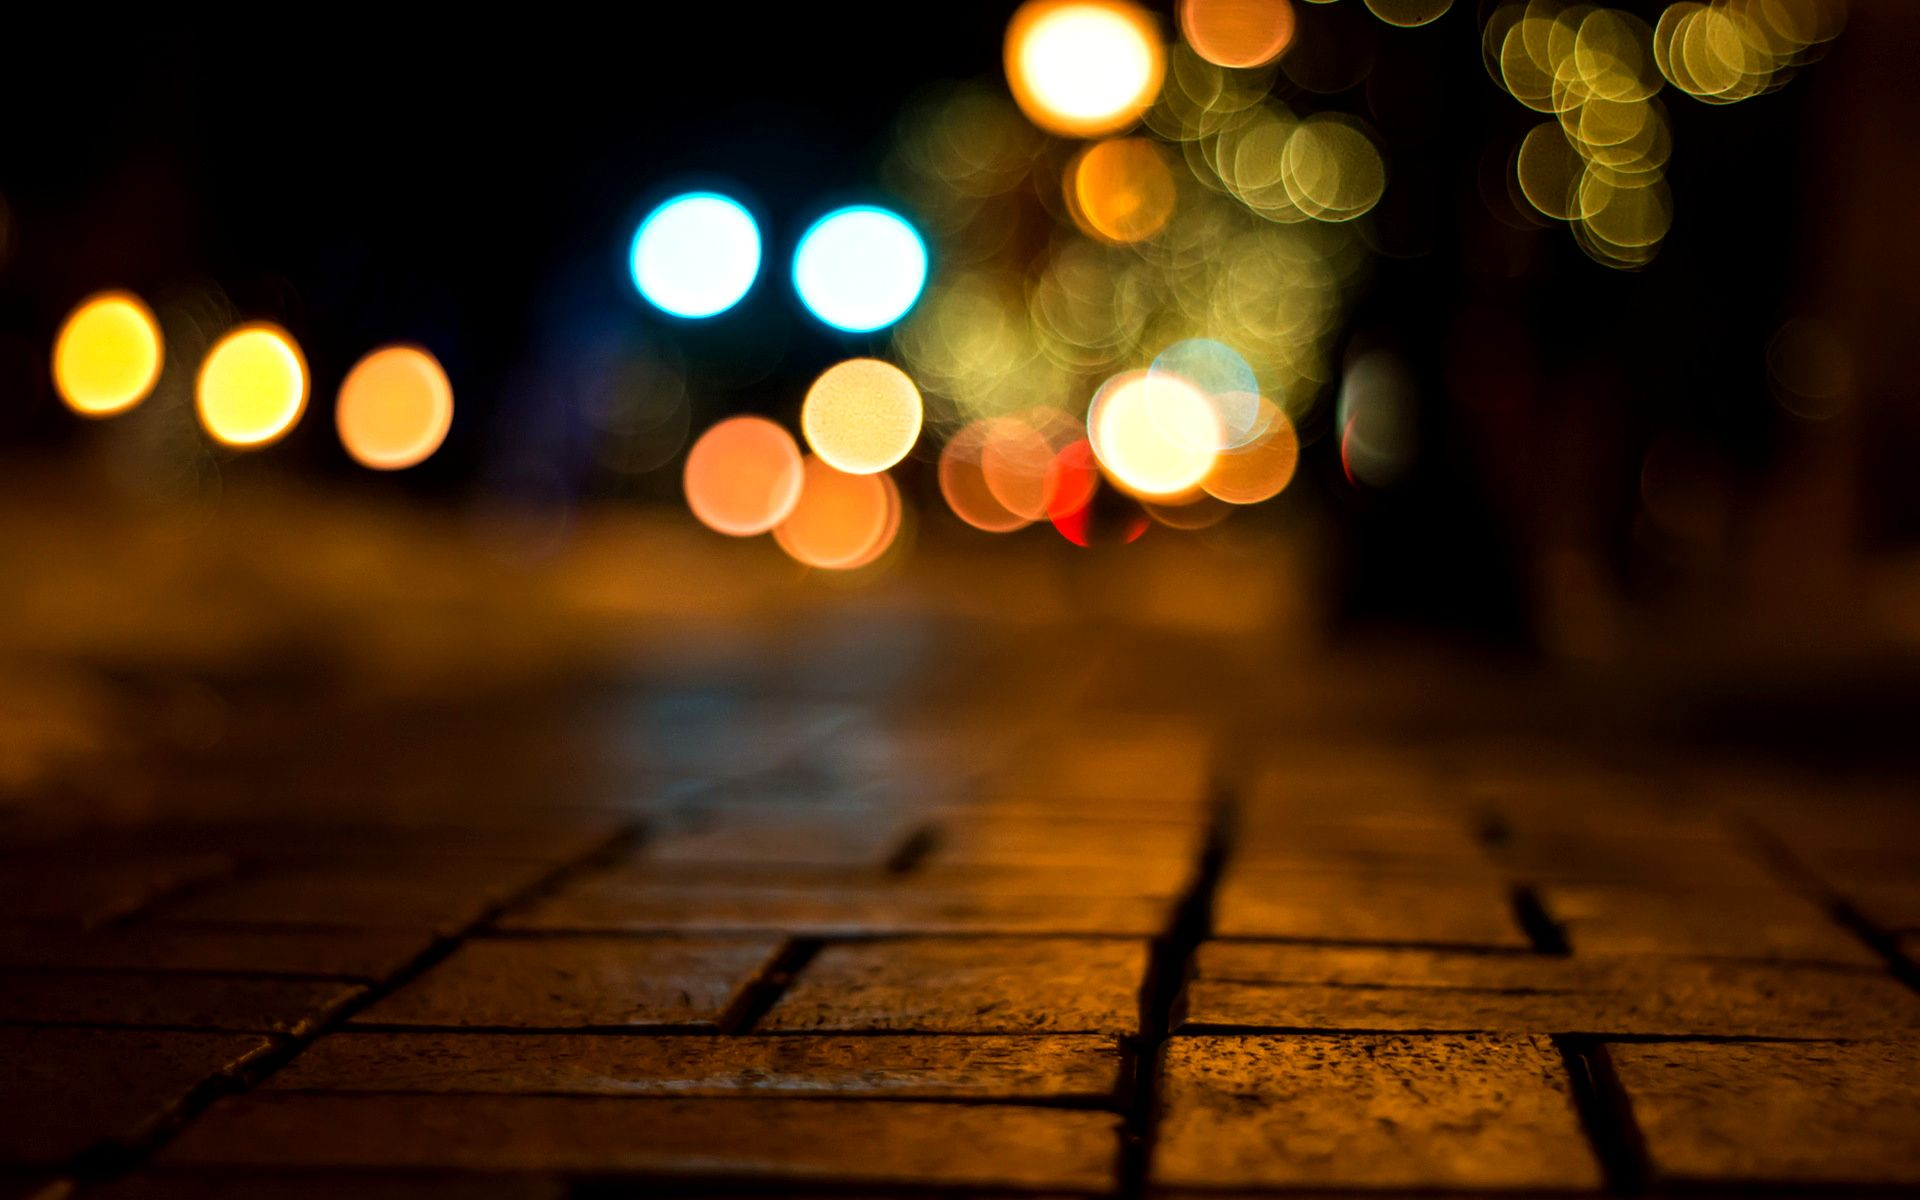 City Lights Bokeh Tags Street Lights City Lights City Bokeh Colors Road 3d Abstract Bokeh Wallpaper Bokeh Photography Background Images Wallpapers